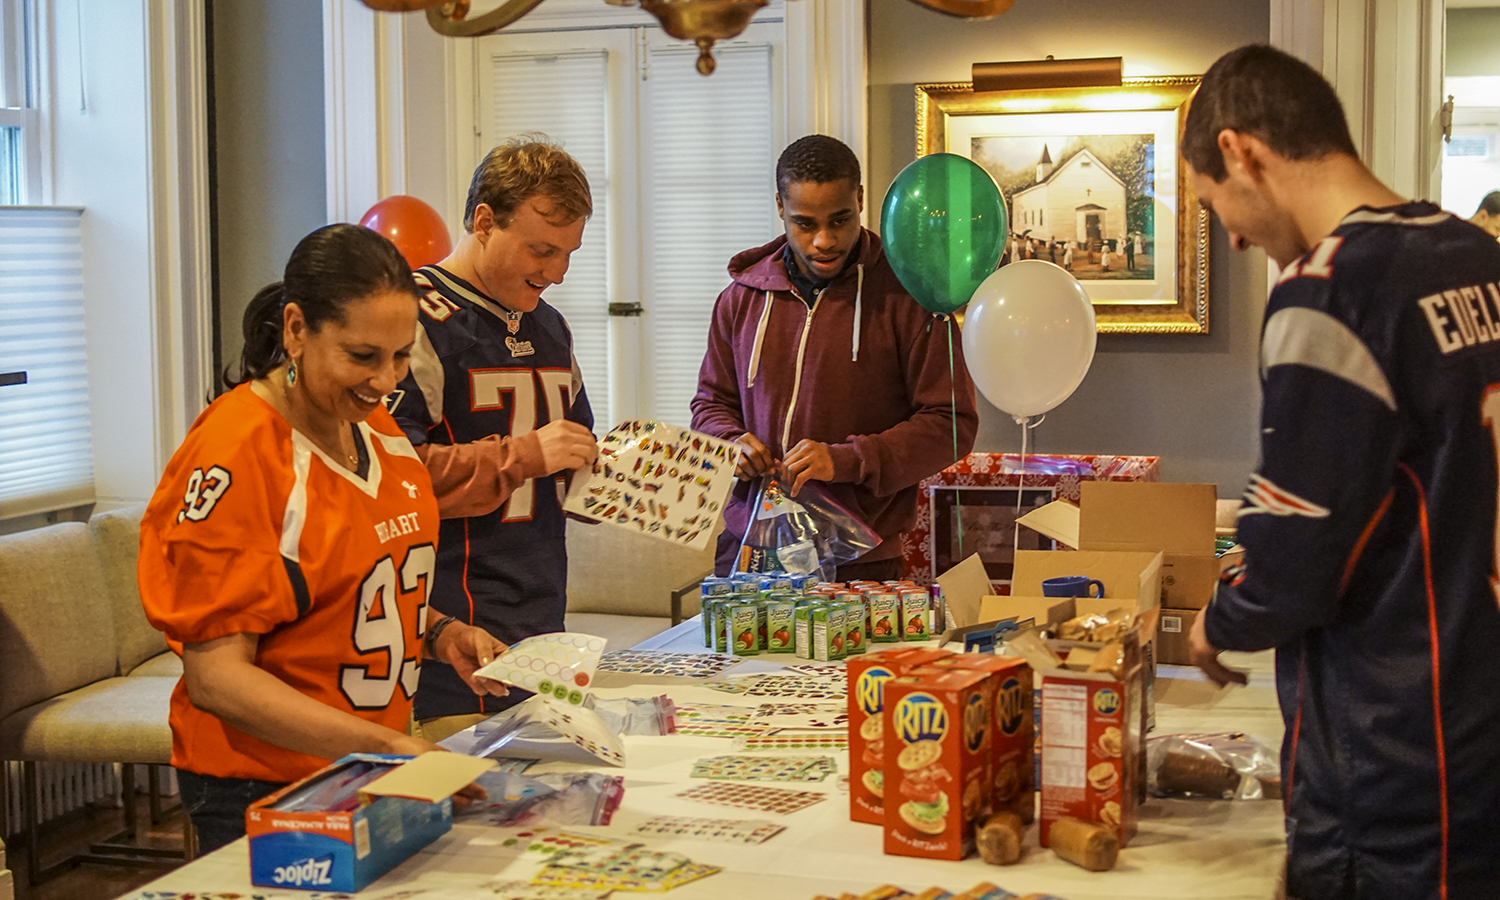 Kim Wilson Vincent HON '21, Ryan Montbleau 'X, Taner Bennerson 'X and Josh Wasserman 'X assemble snack packages for new HWS Food Pantry at the President's House on Thursday.